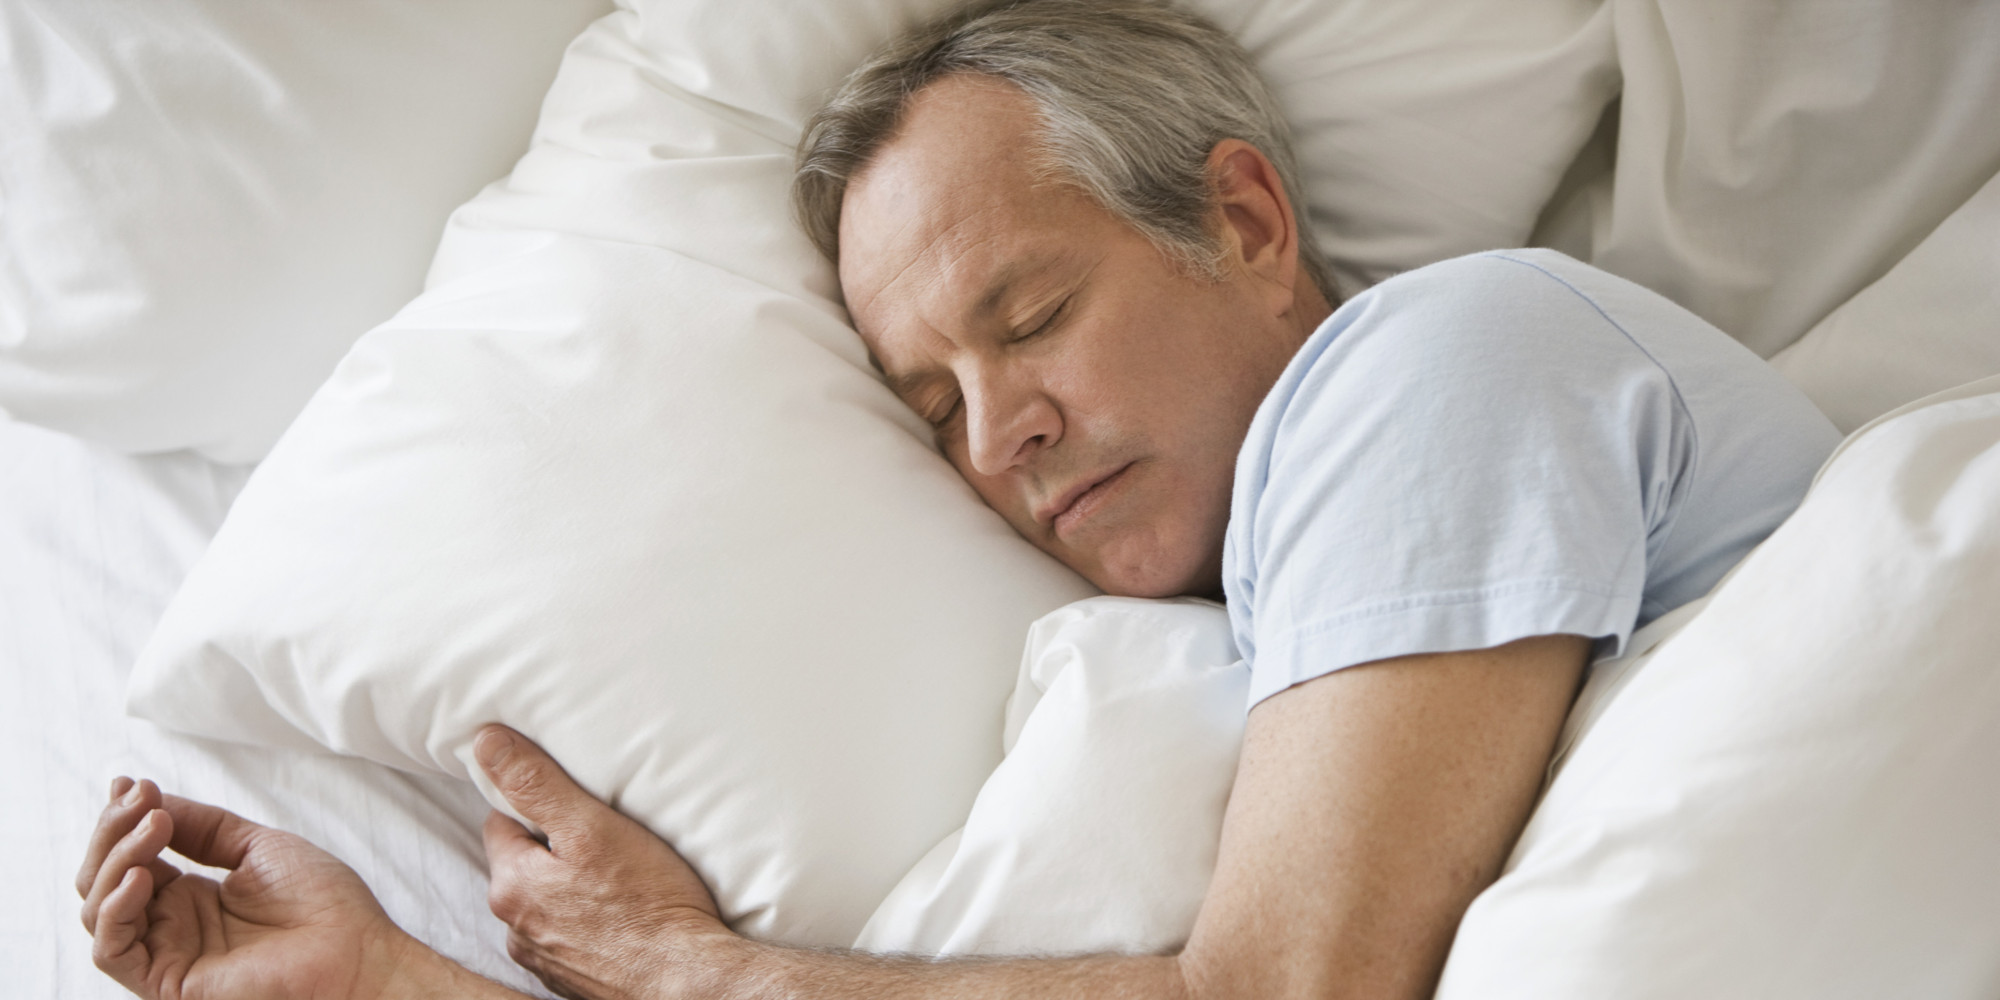 Sleep Troubles Linked To Increased Risk Of Alzheimer's In ...